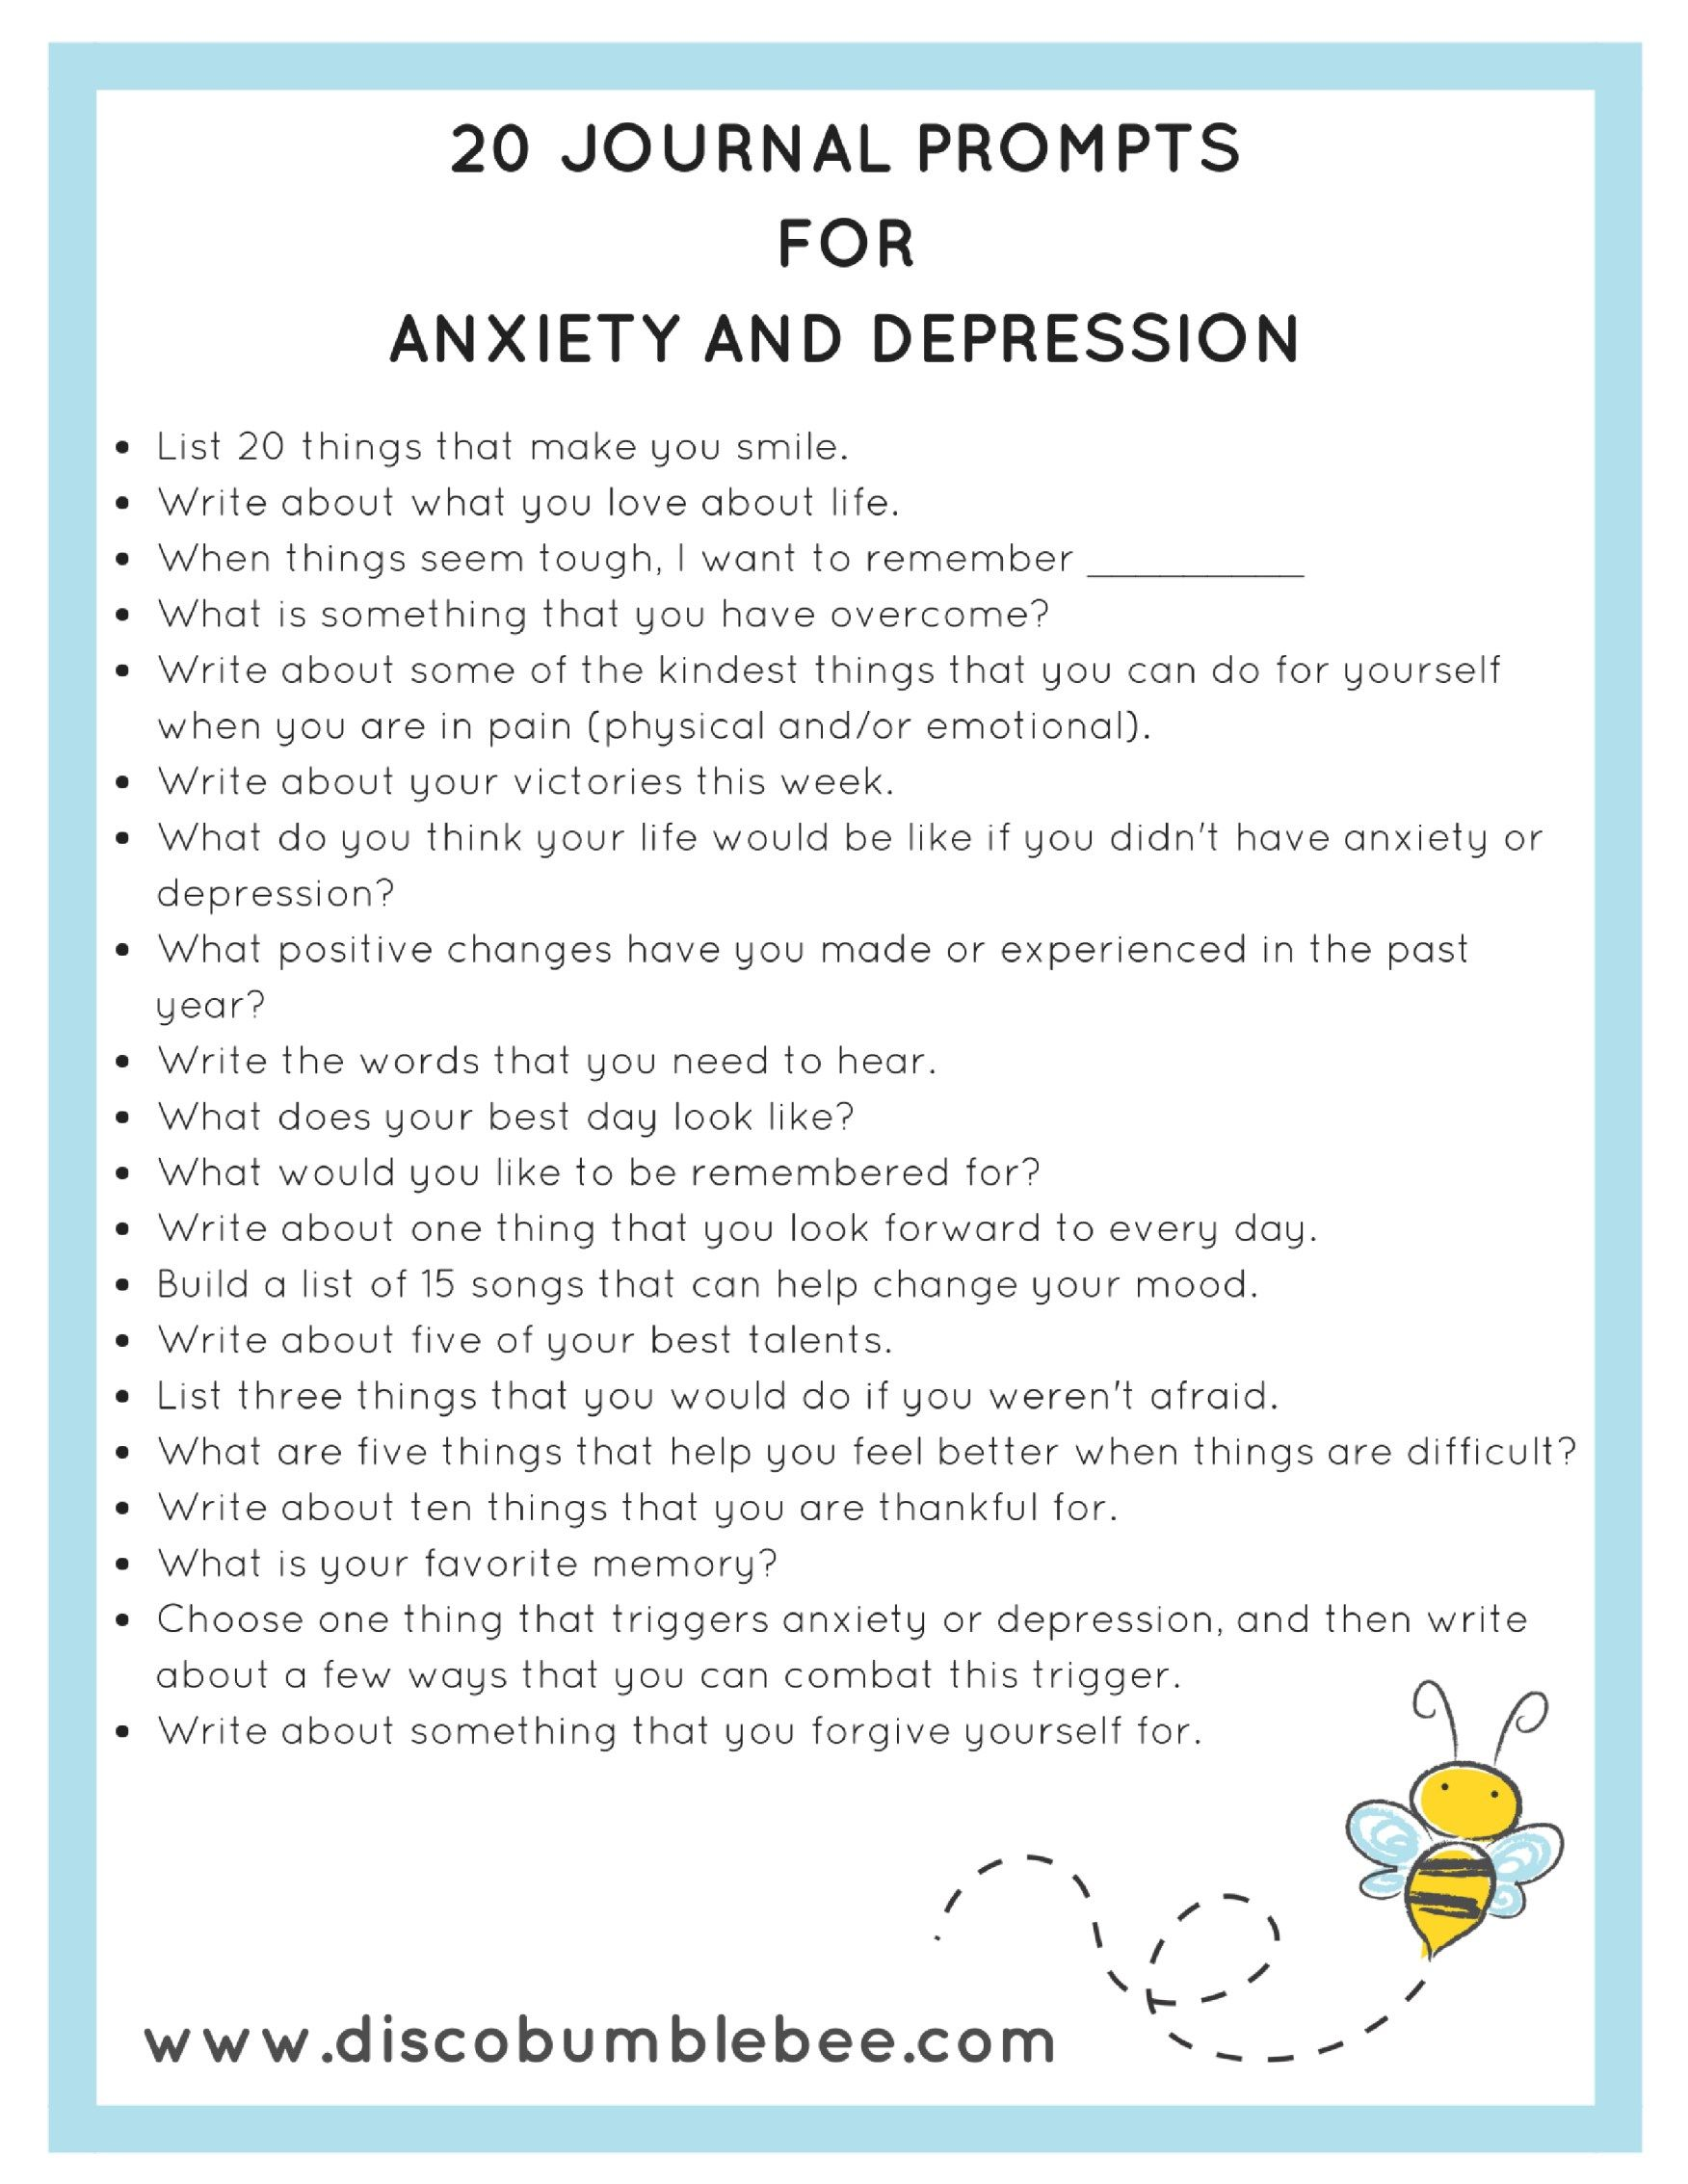 20 Journal Prompts For Anxiety And Depression